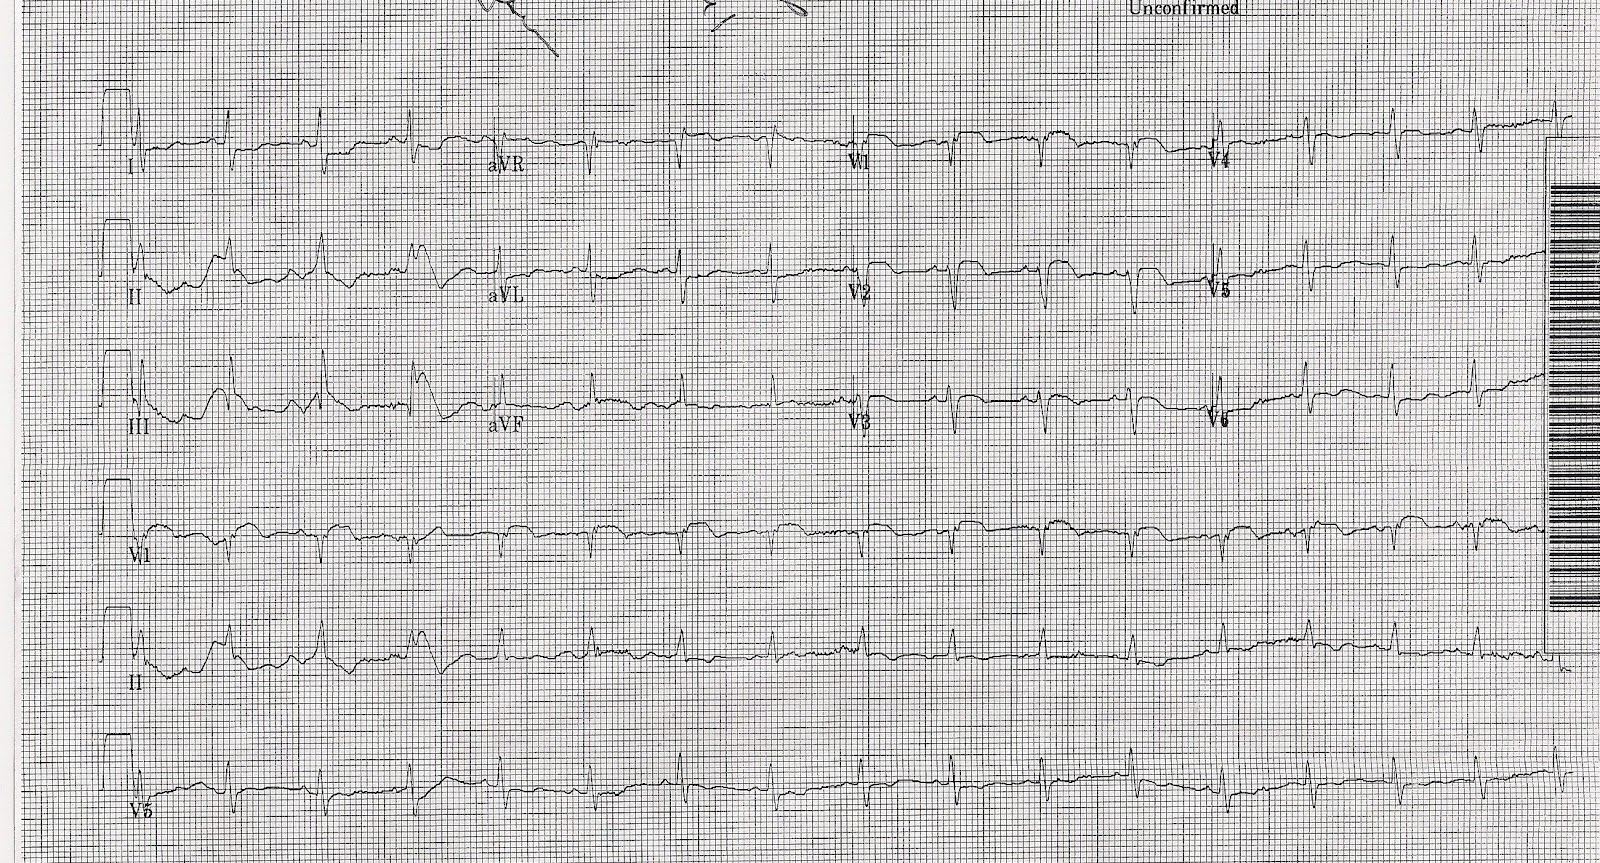 Ecgs For Ems May